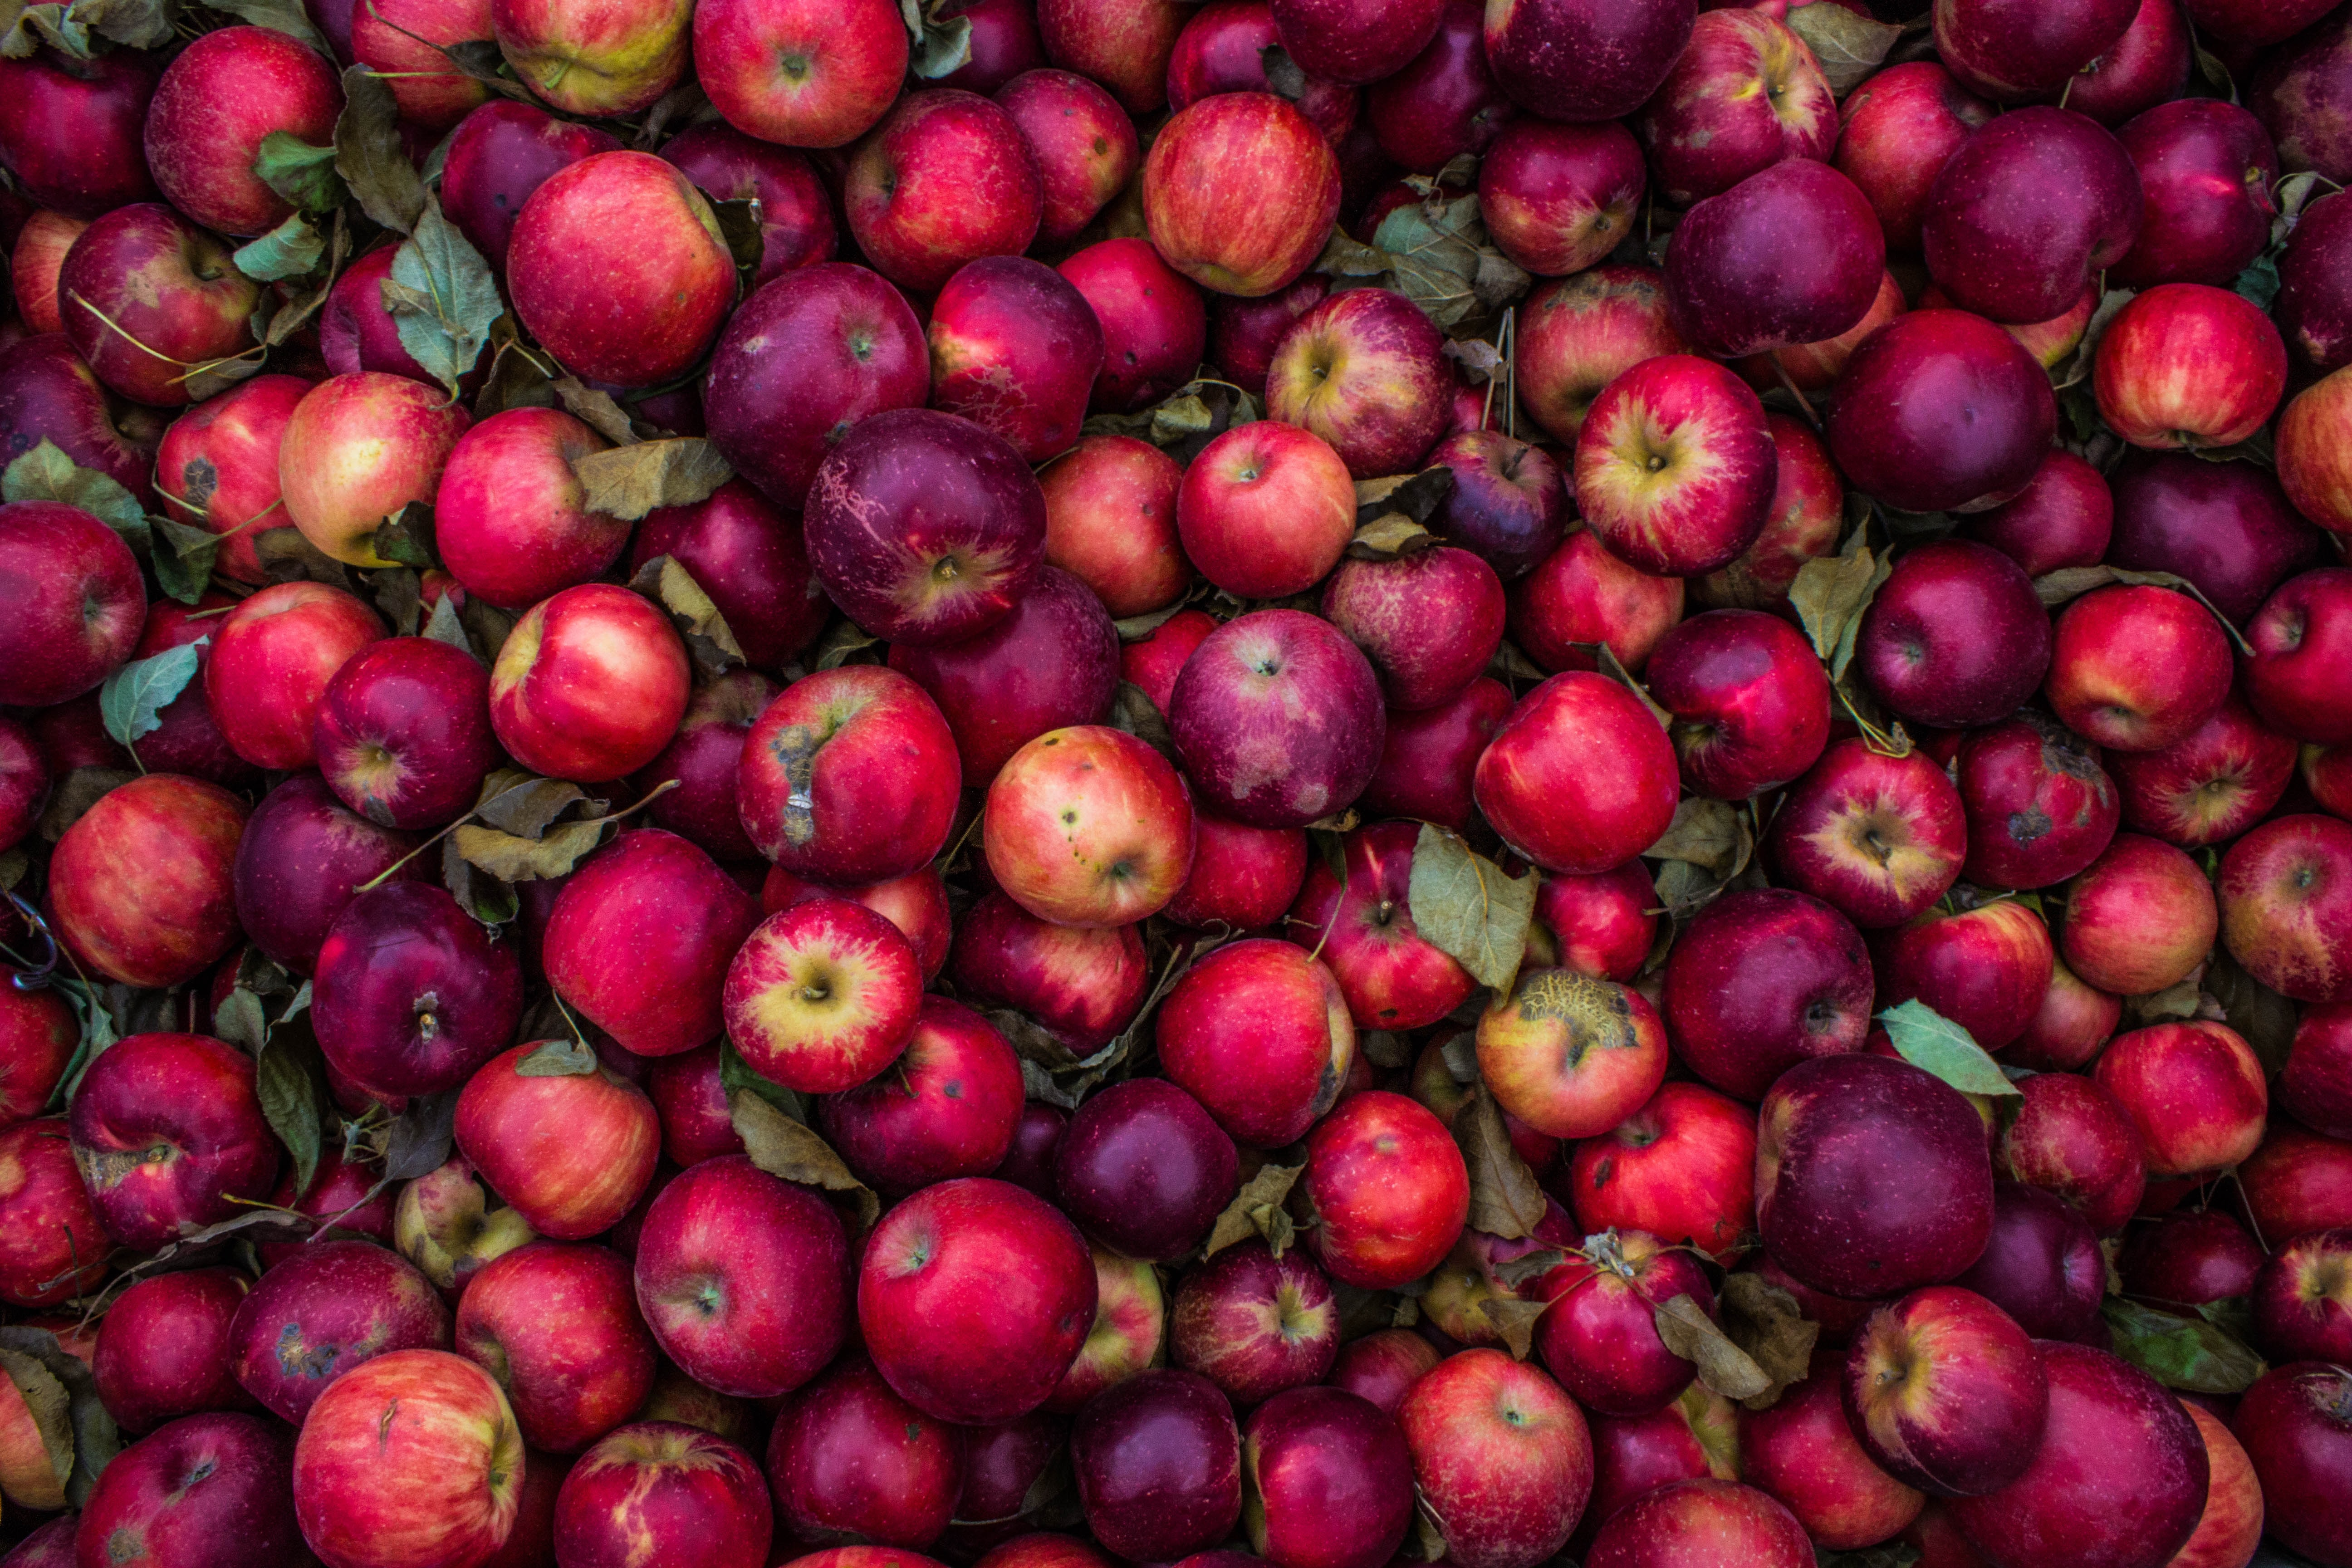 Pile of freshly picked red apples and purple fruit